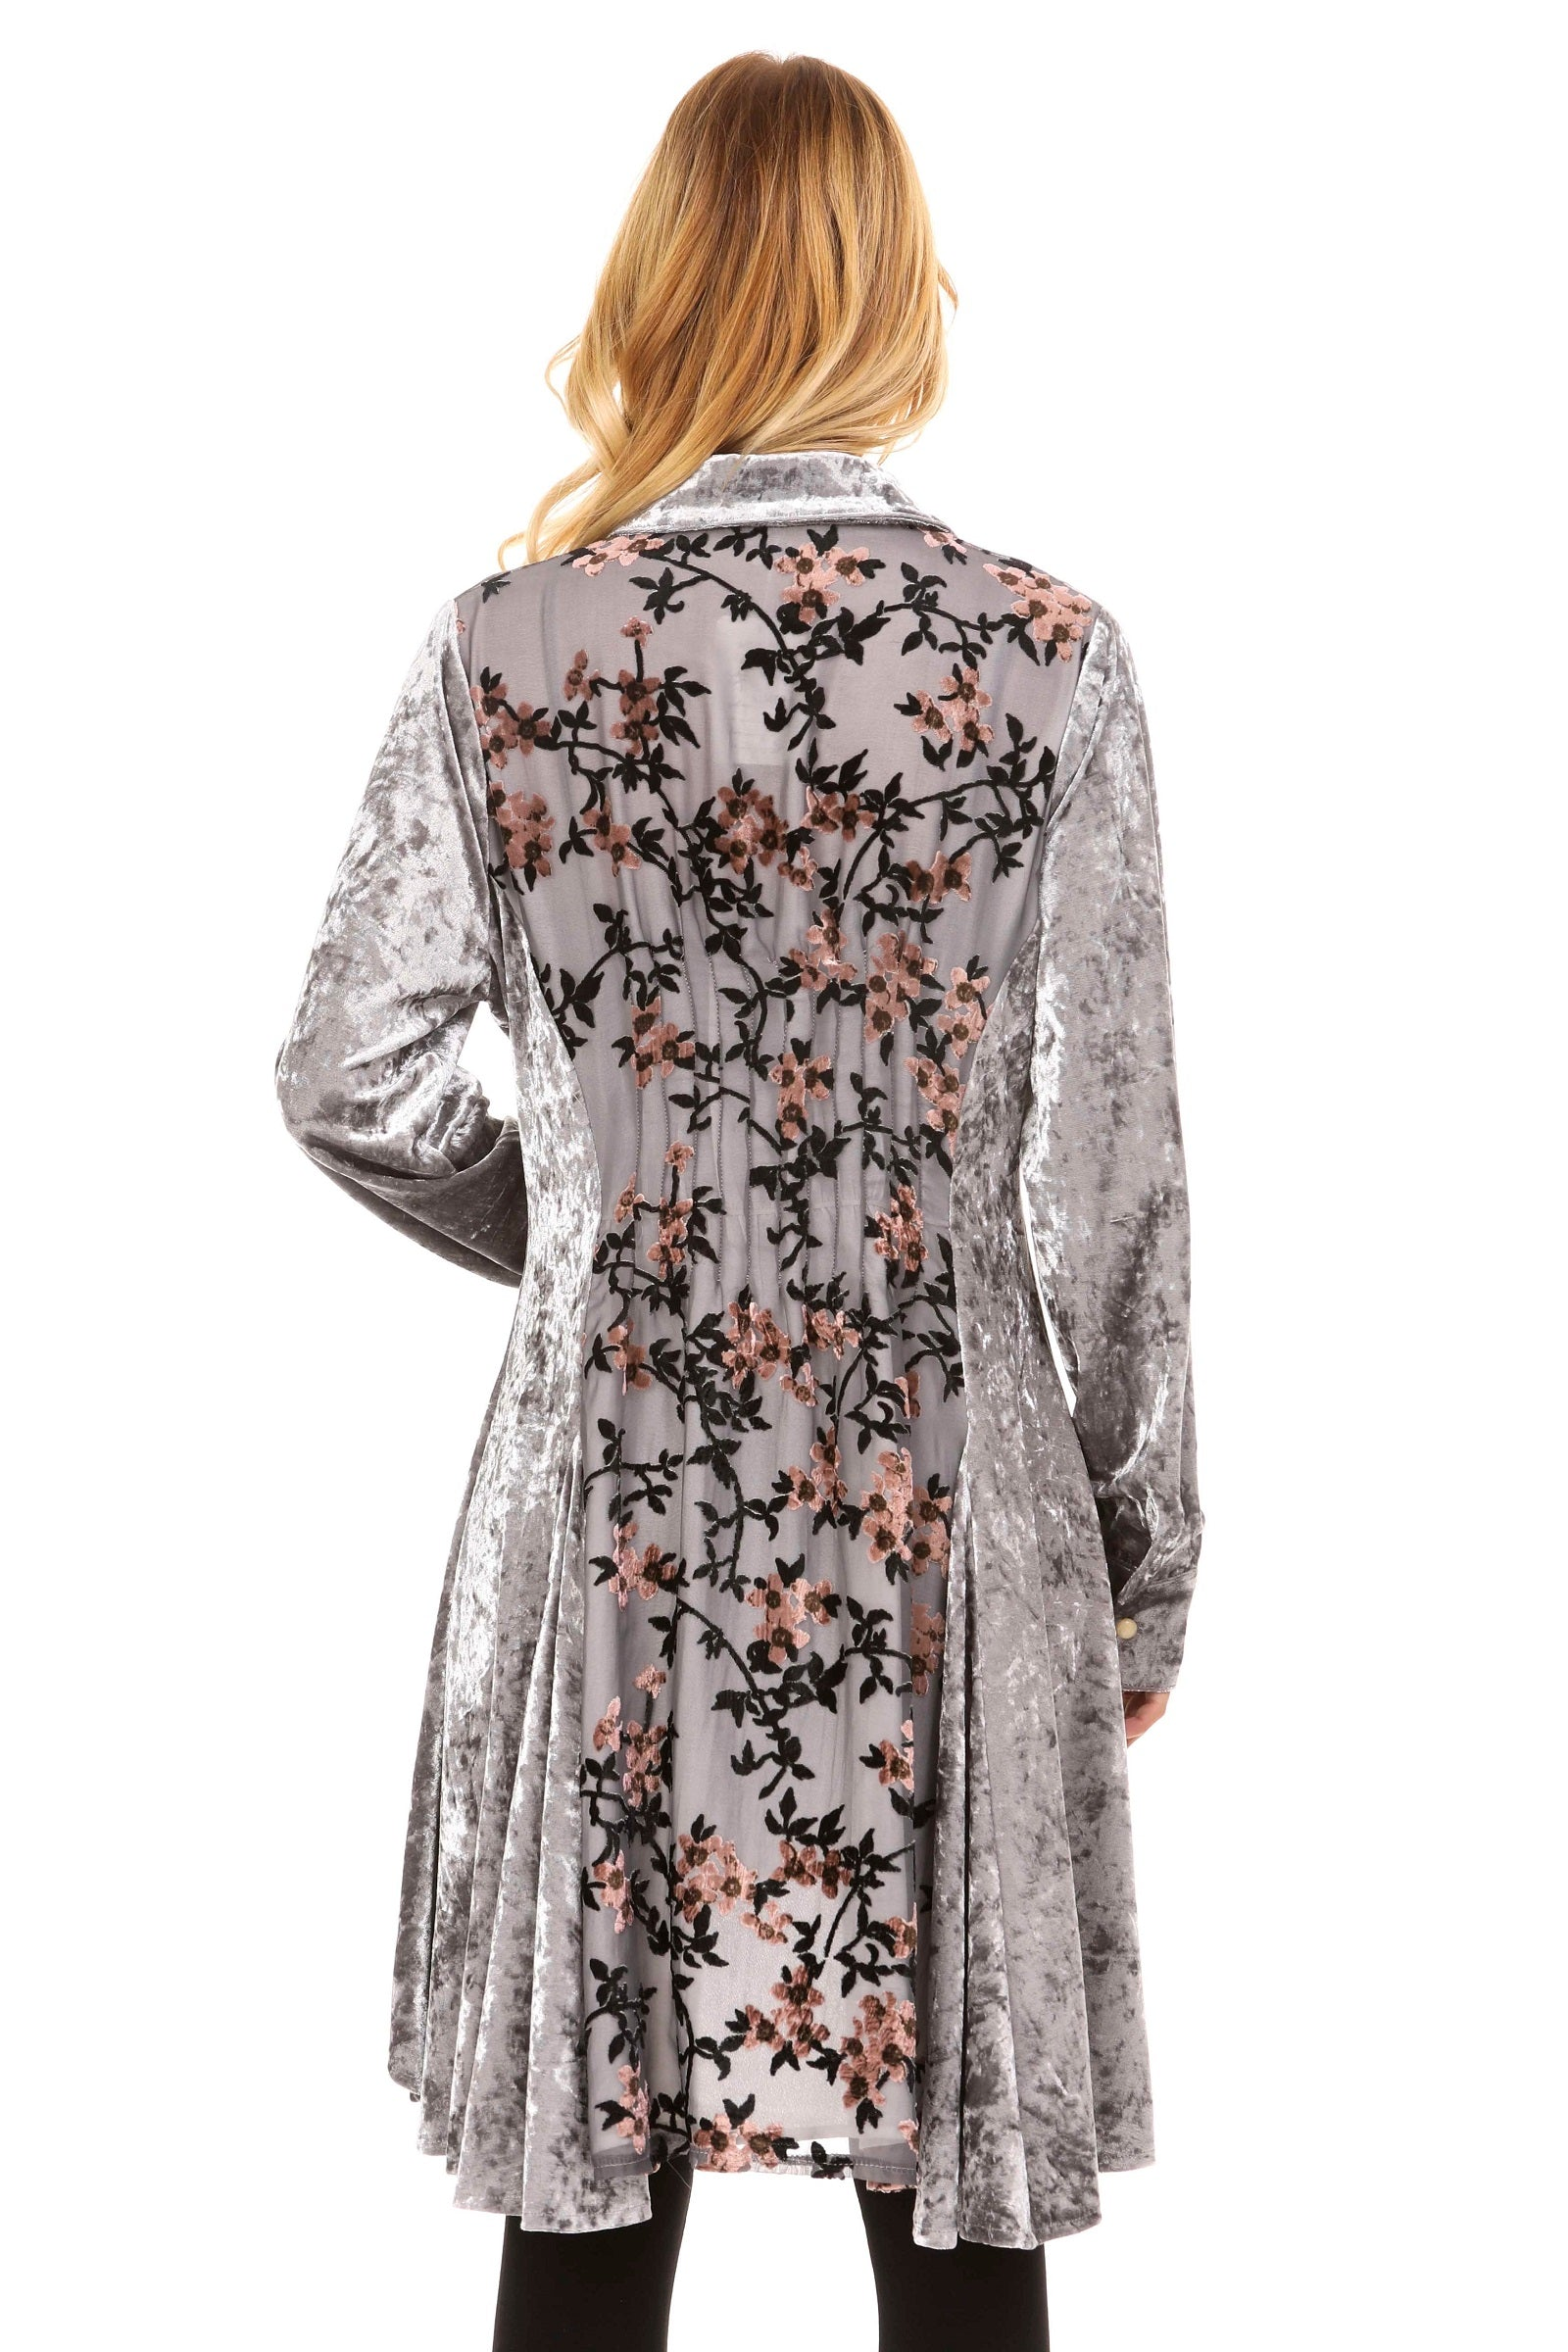 Back view silver velvet tunic with lined burnout velvet back panel